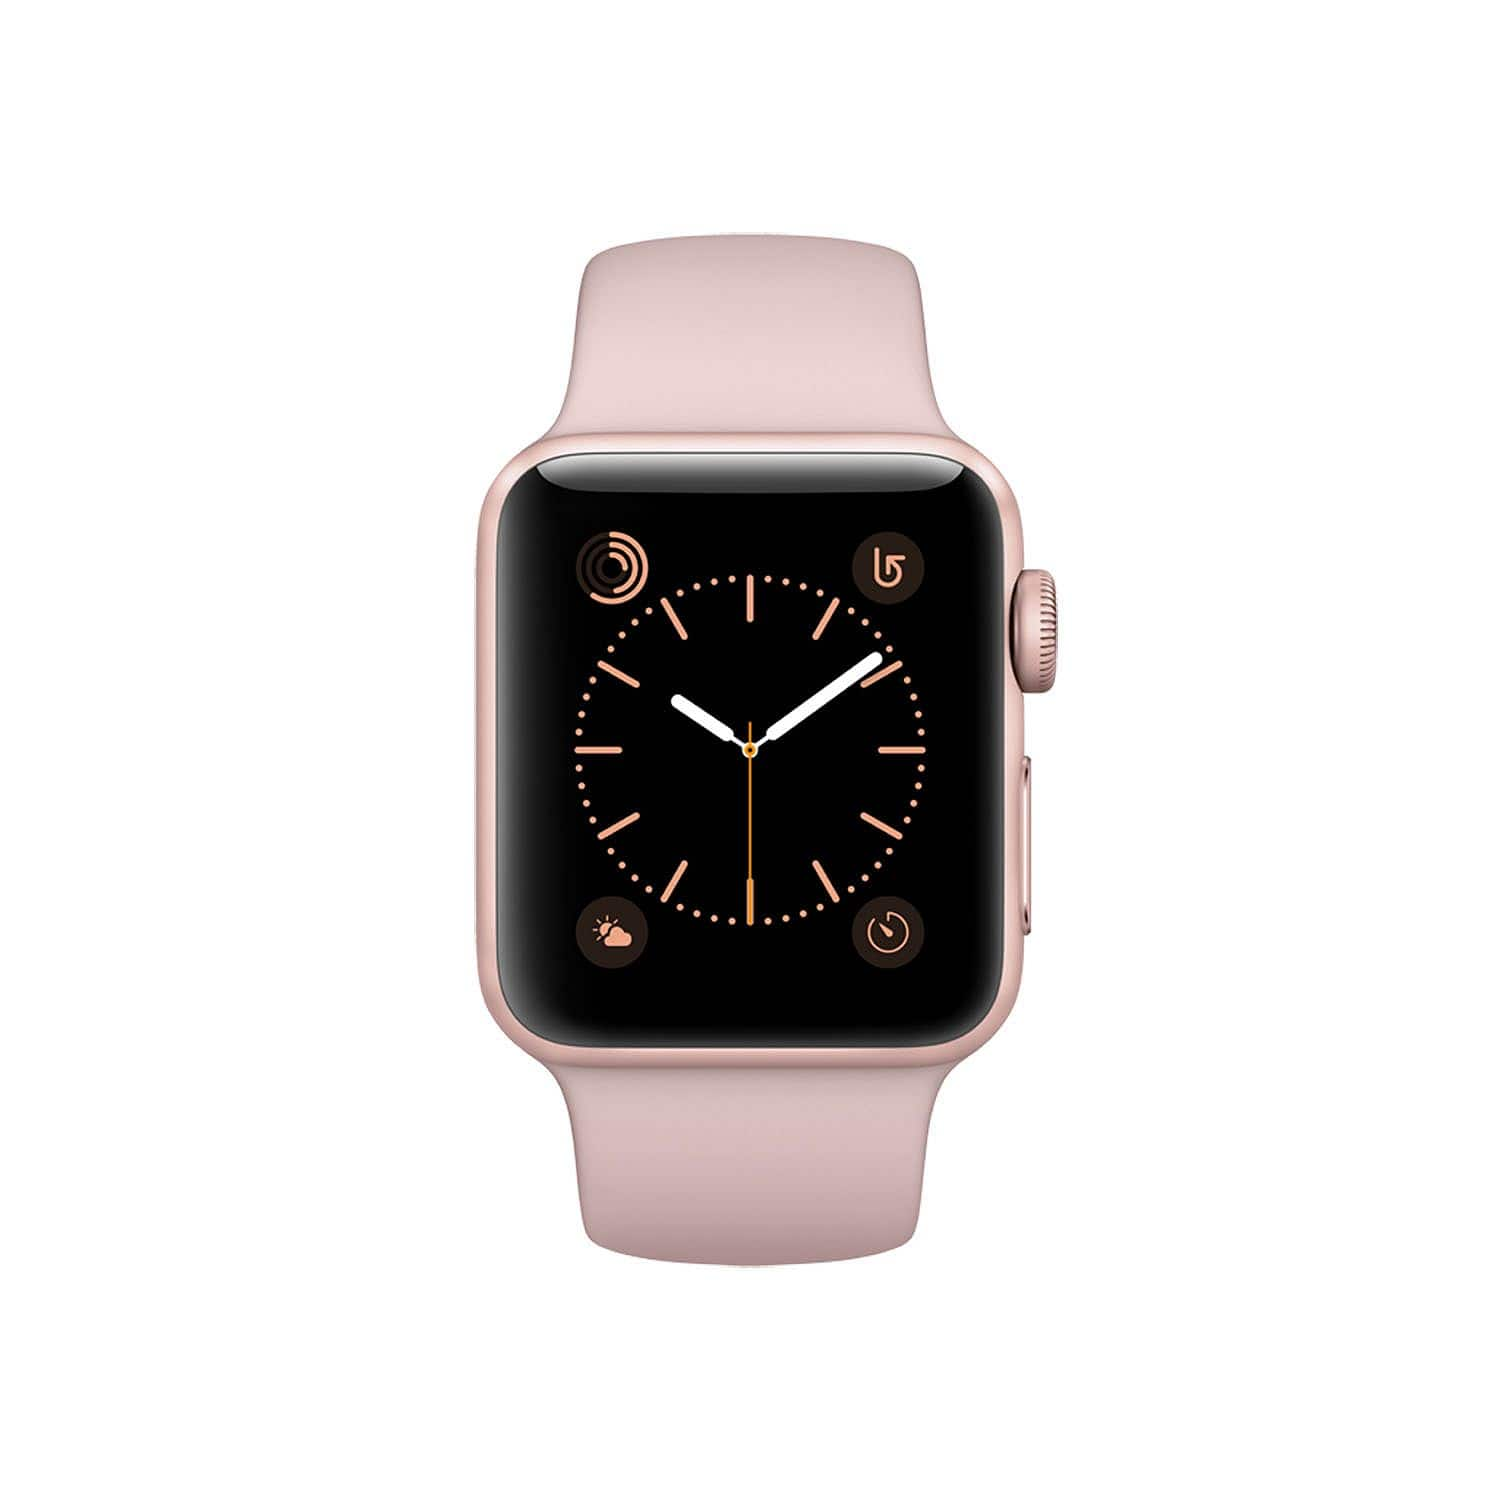 apple watch series 2 rose gold 38mm for 257 at sam 39 s club. Black Bedroom Furniture Sets. Home Design Ideas